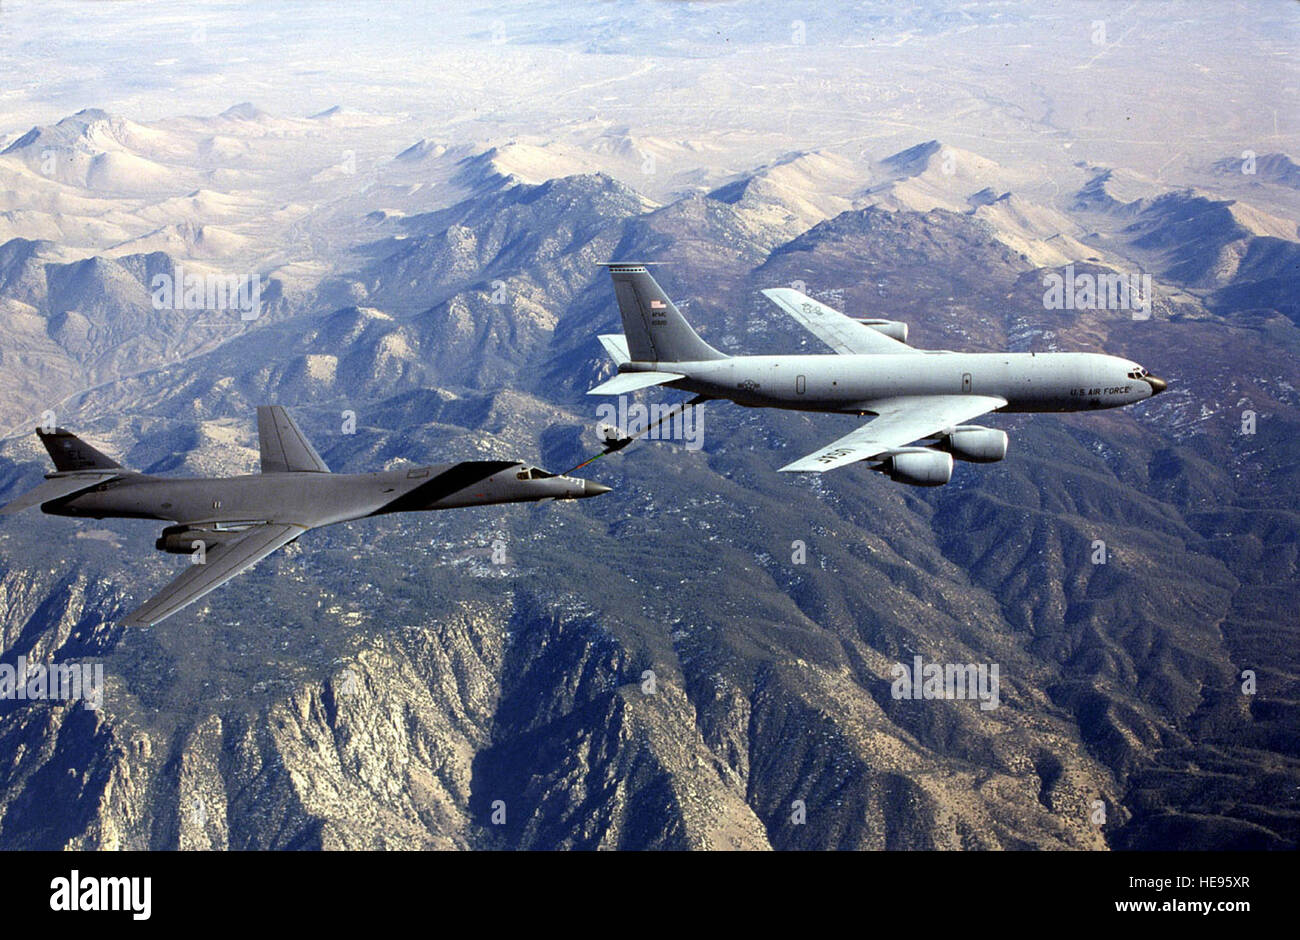 A KC-135 refuels a B-2 Aircraft while on a training mission.  The KC-135's principal mission is air refueling. - Stock Image